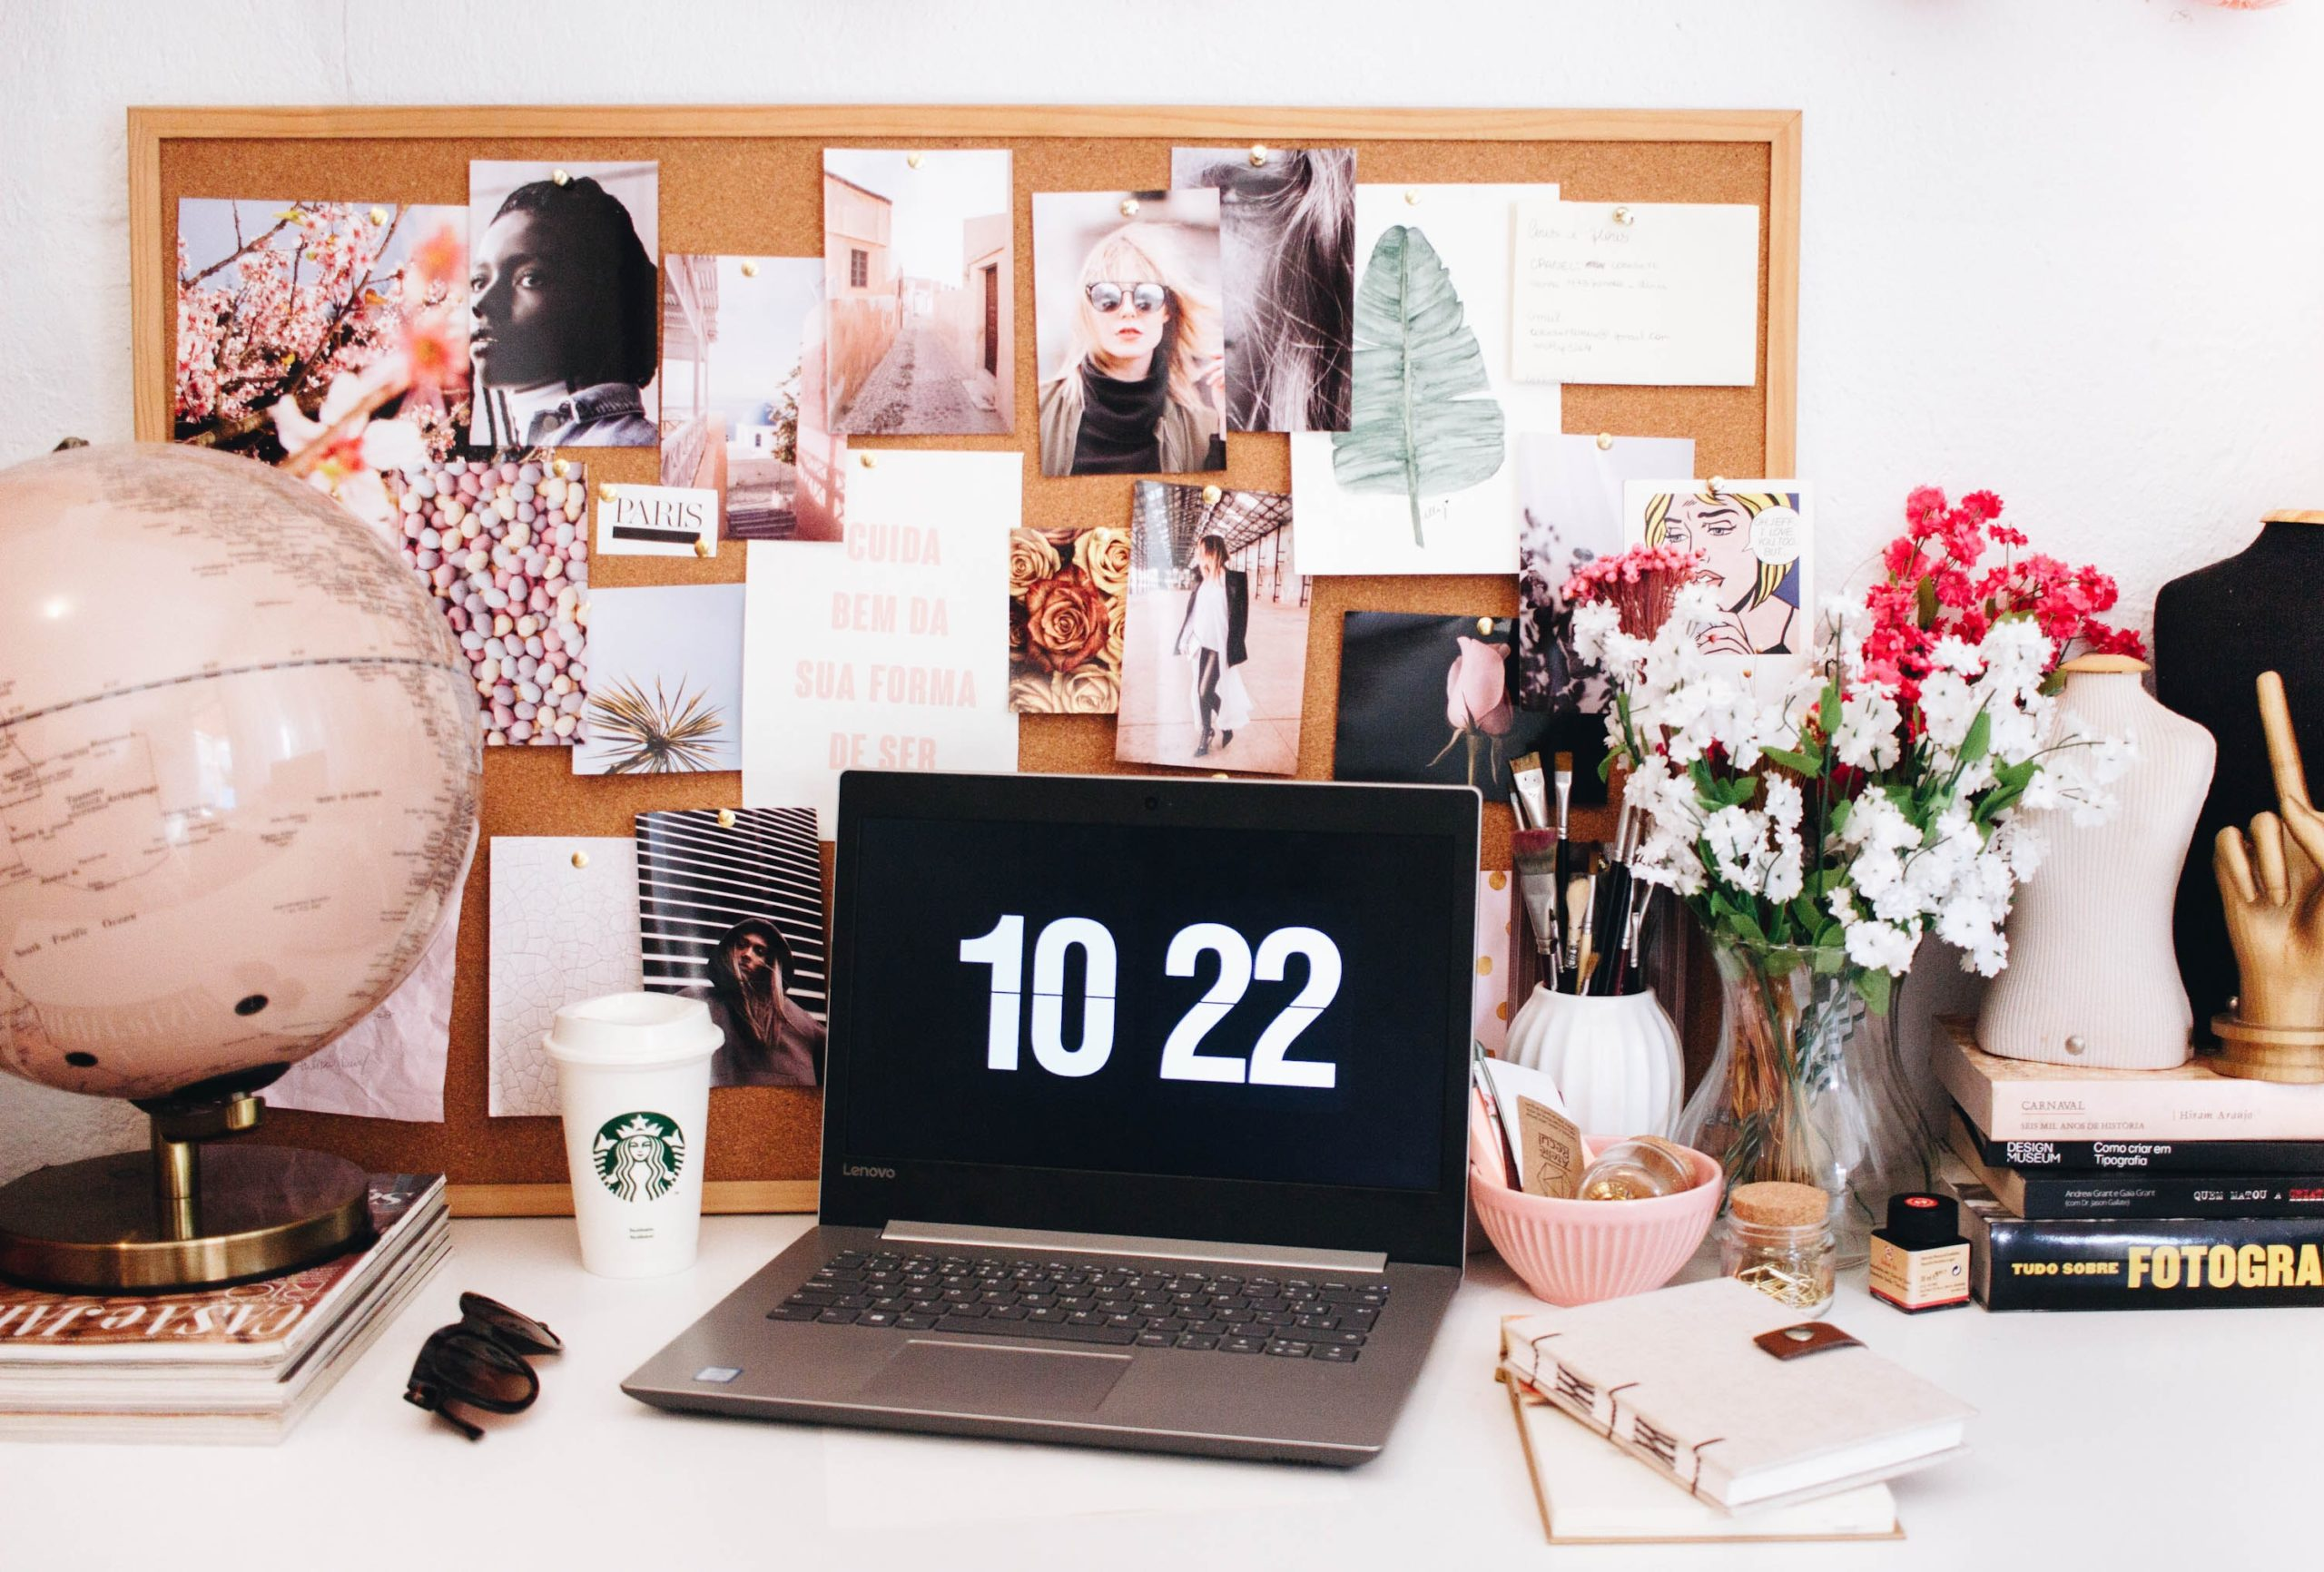 a cut desk with a laptop, globe, flowers and more on it